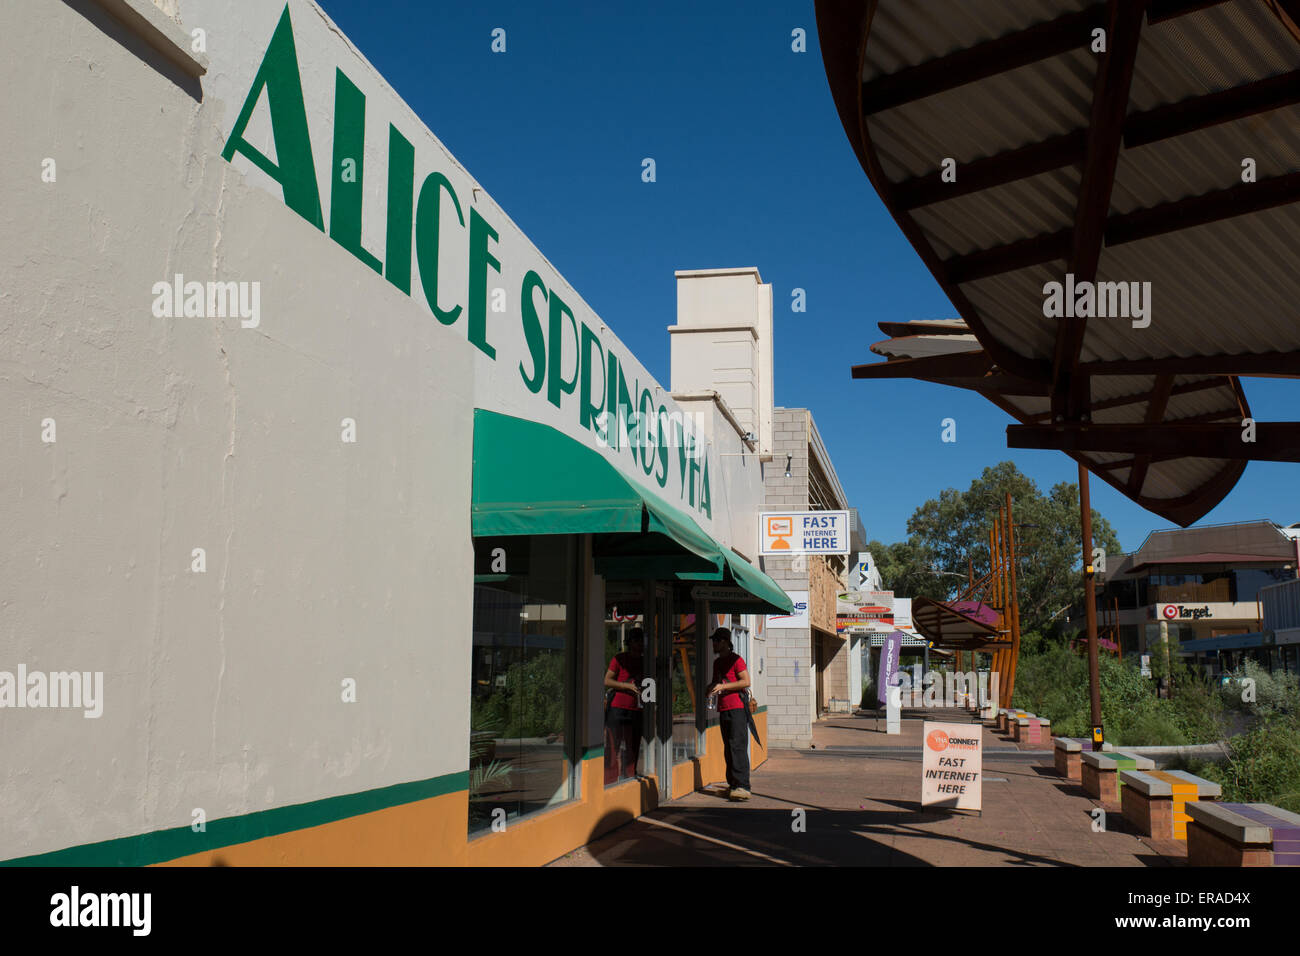 Australia, NT, Alice Springs. Downtown Alice Springs. - Stock Image